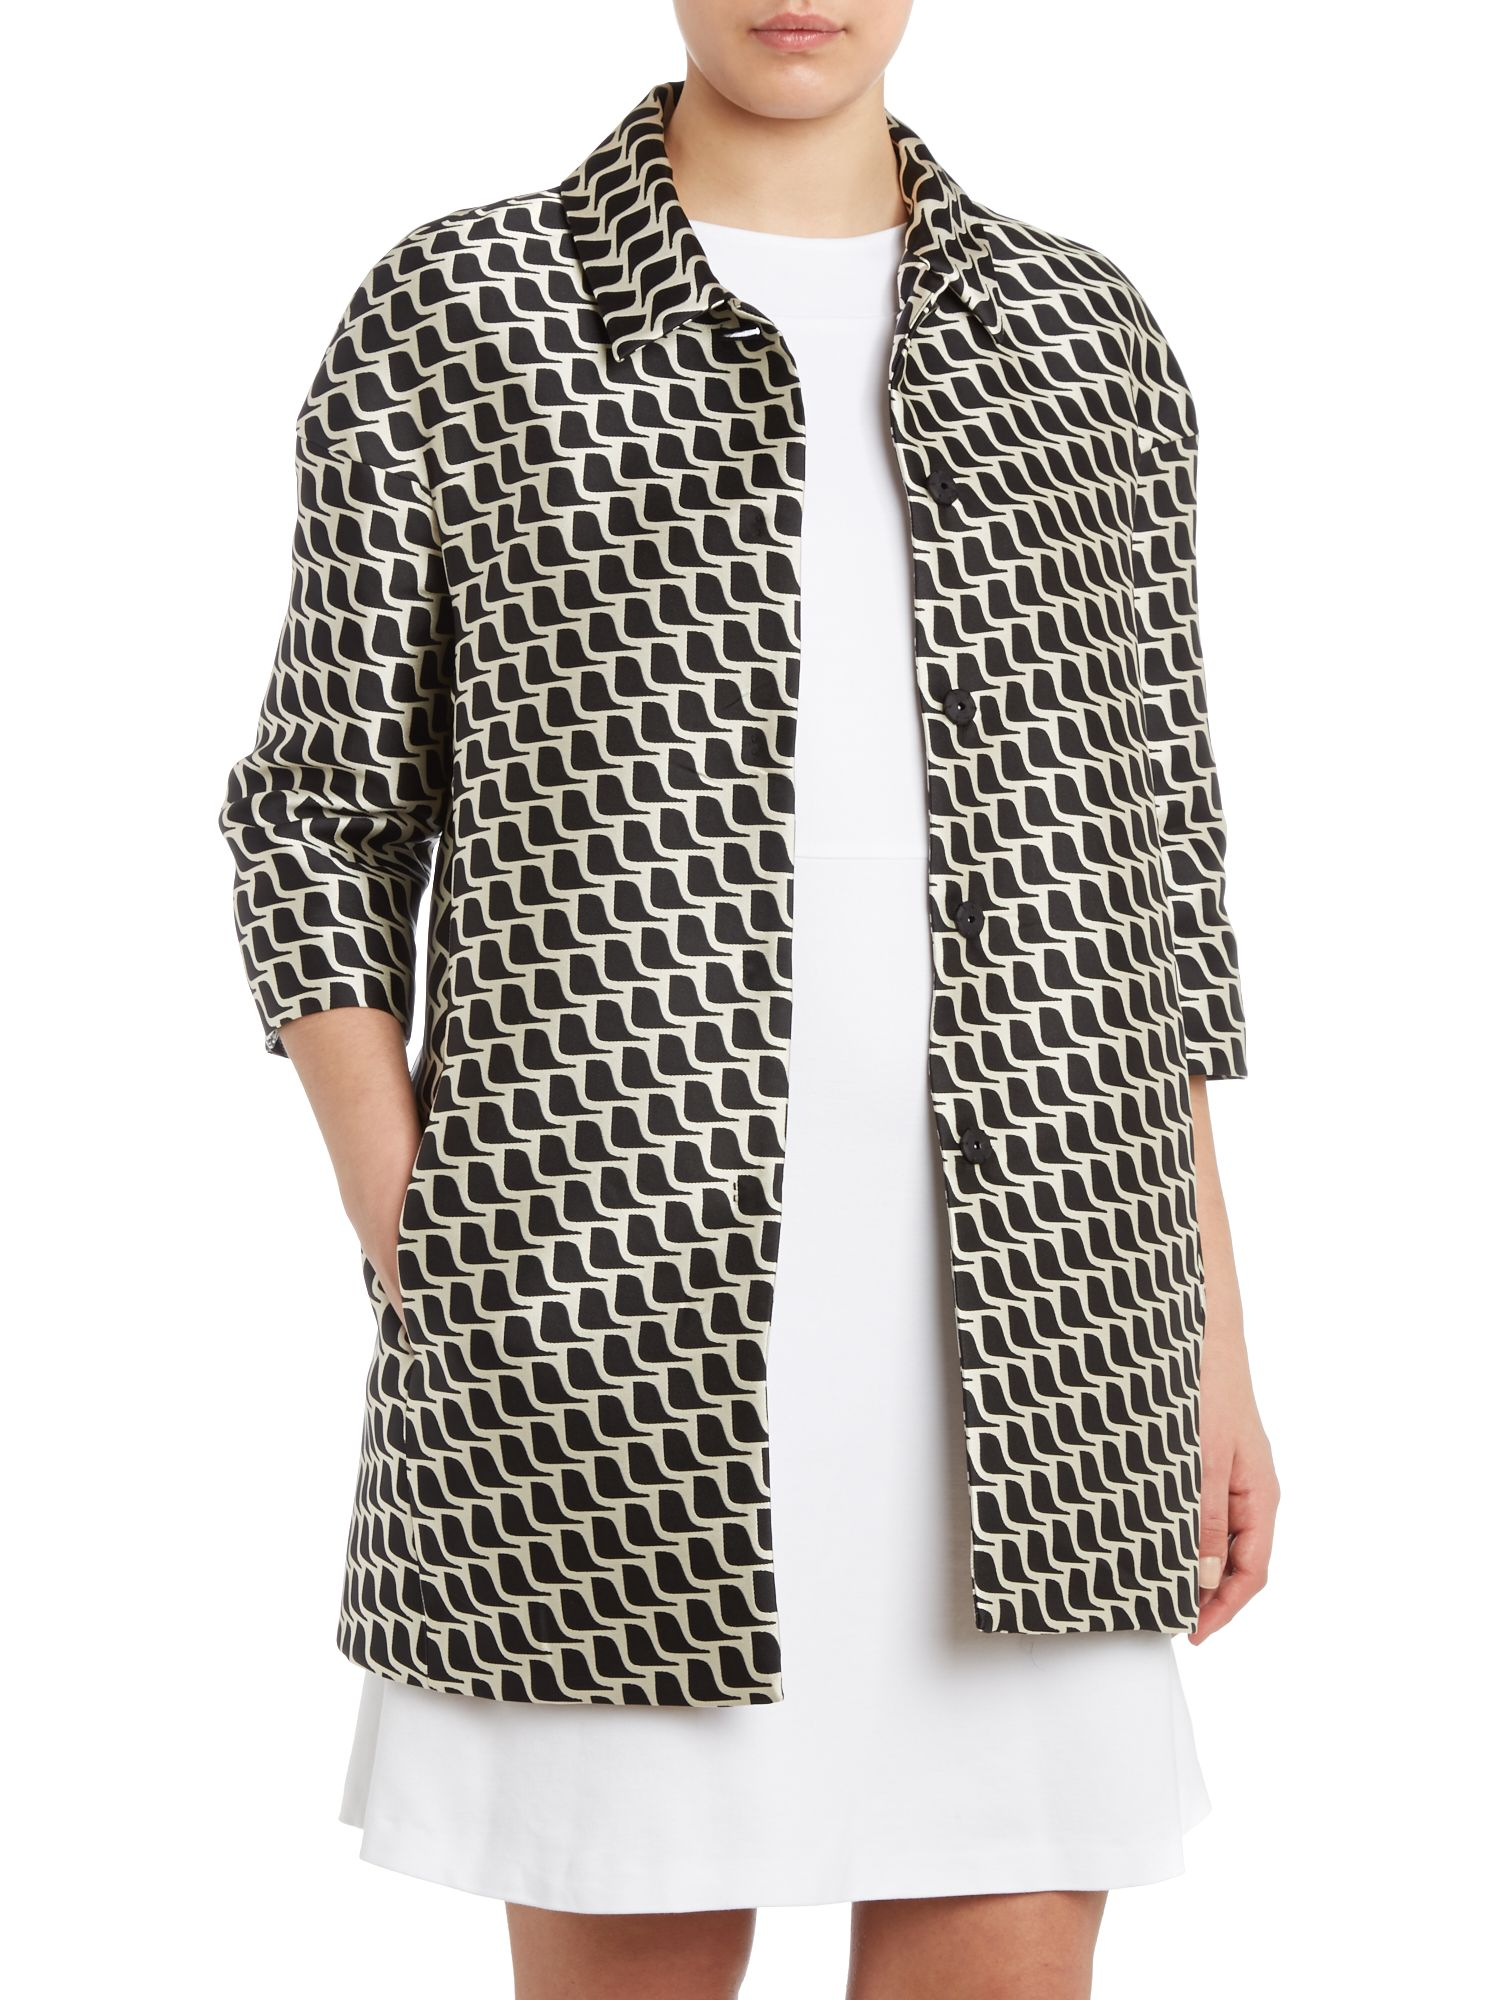 Chair print coat